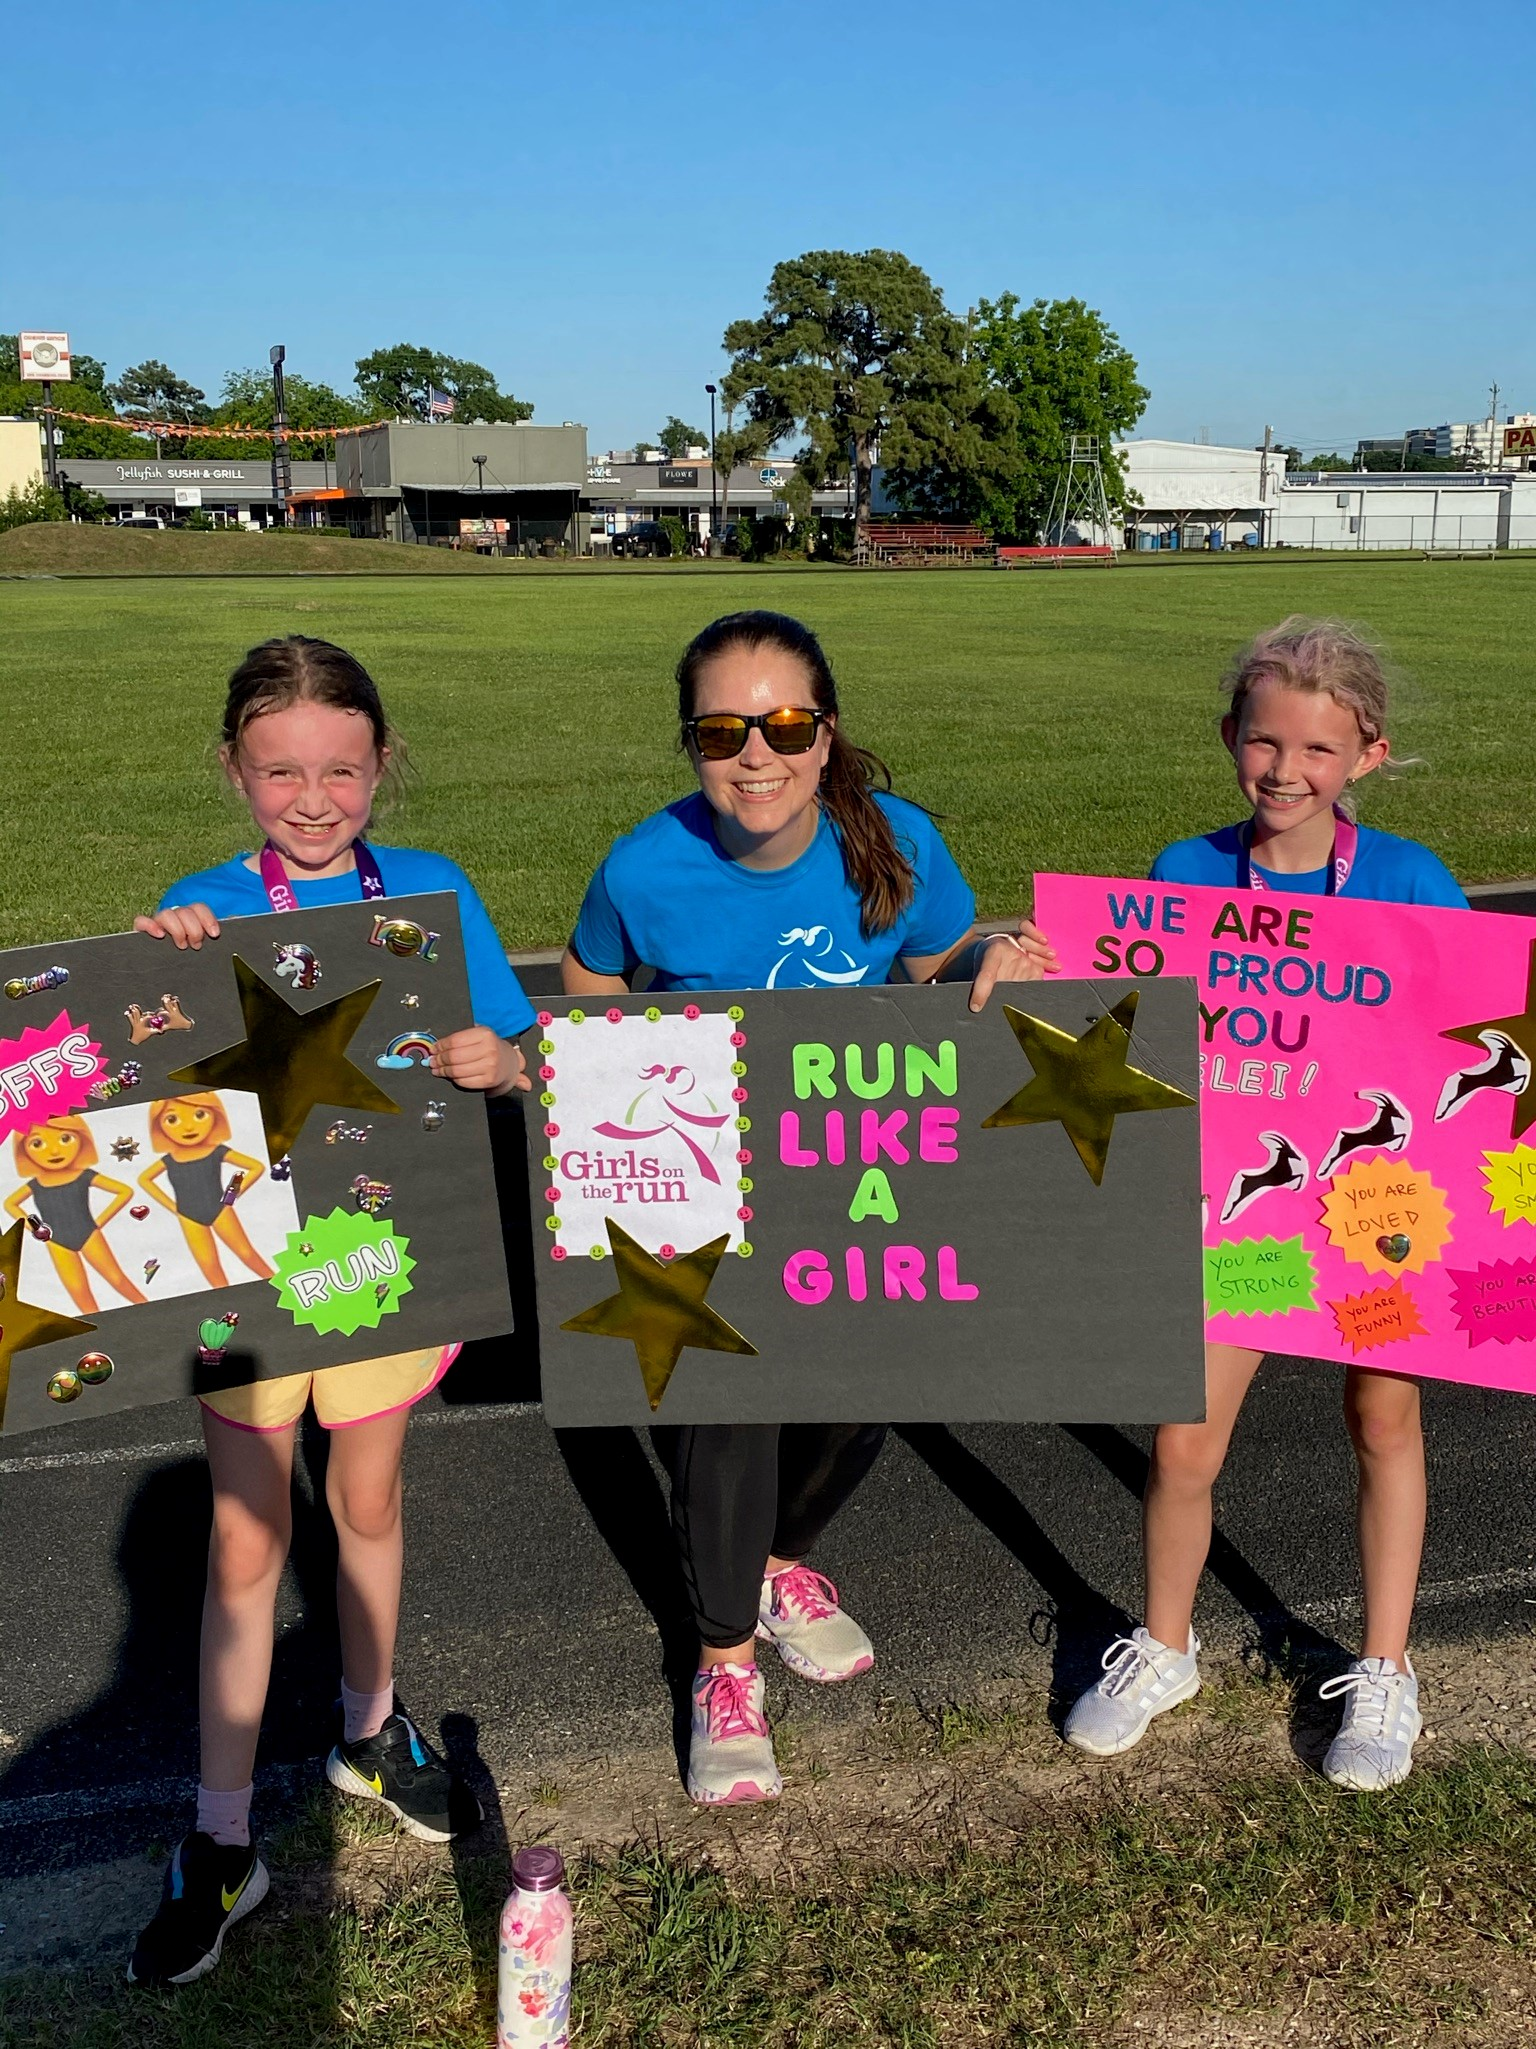 Girls on the Run Coach and participants standing outdoors, each holding a handmade sign. The signs have power poses, positive affirmation statements and words of support.